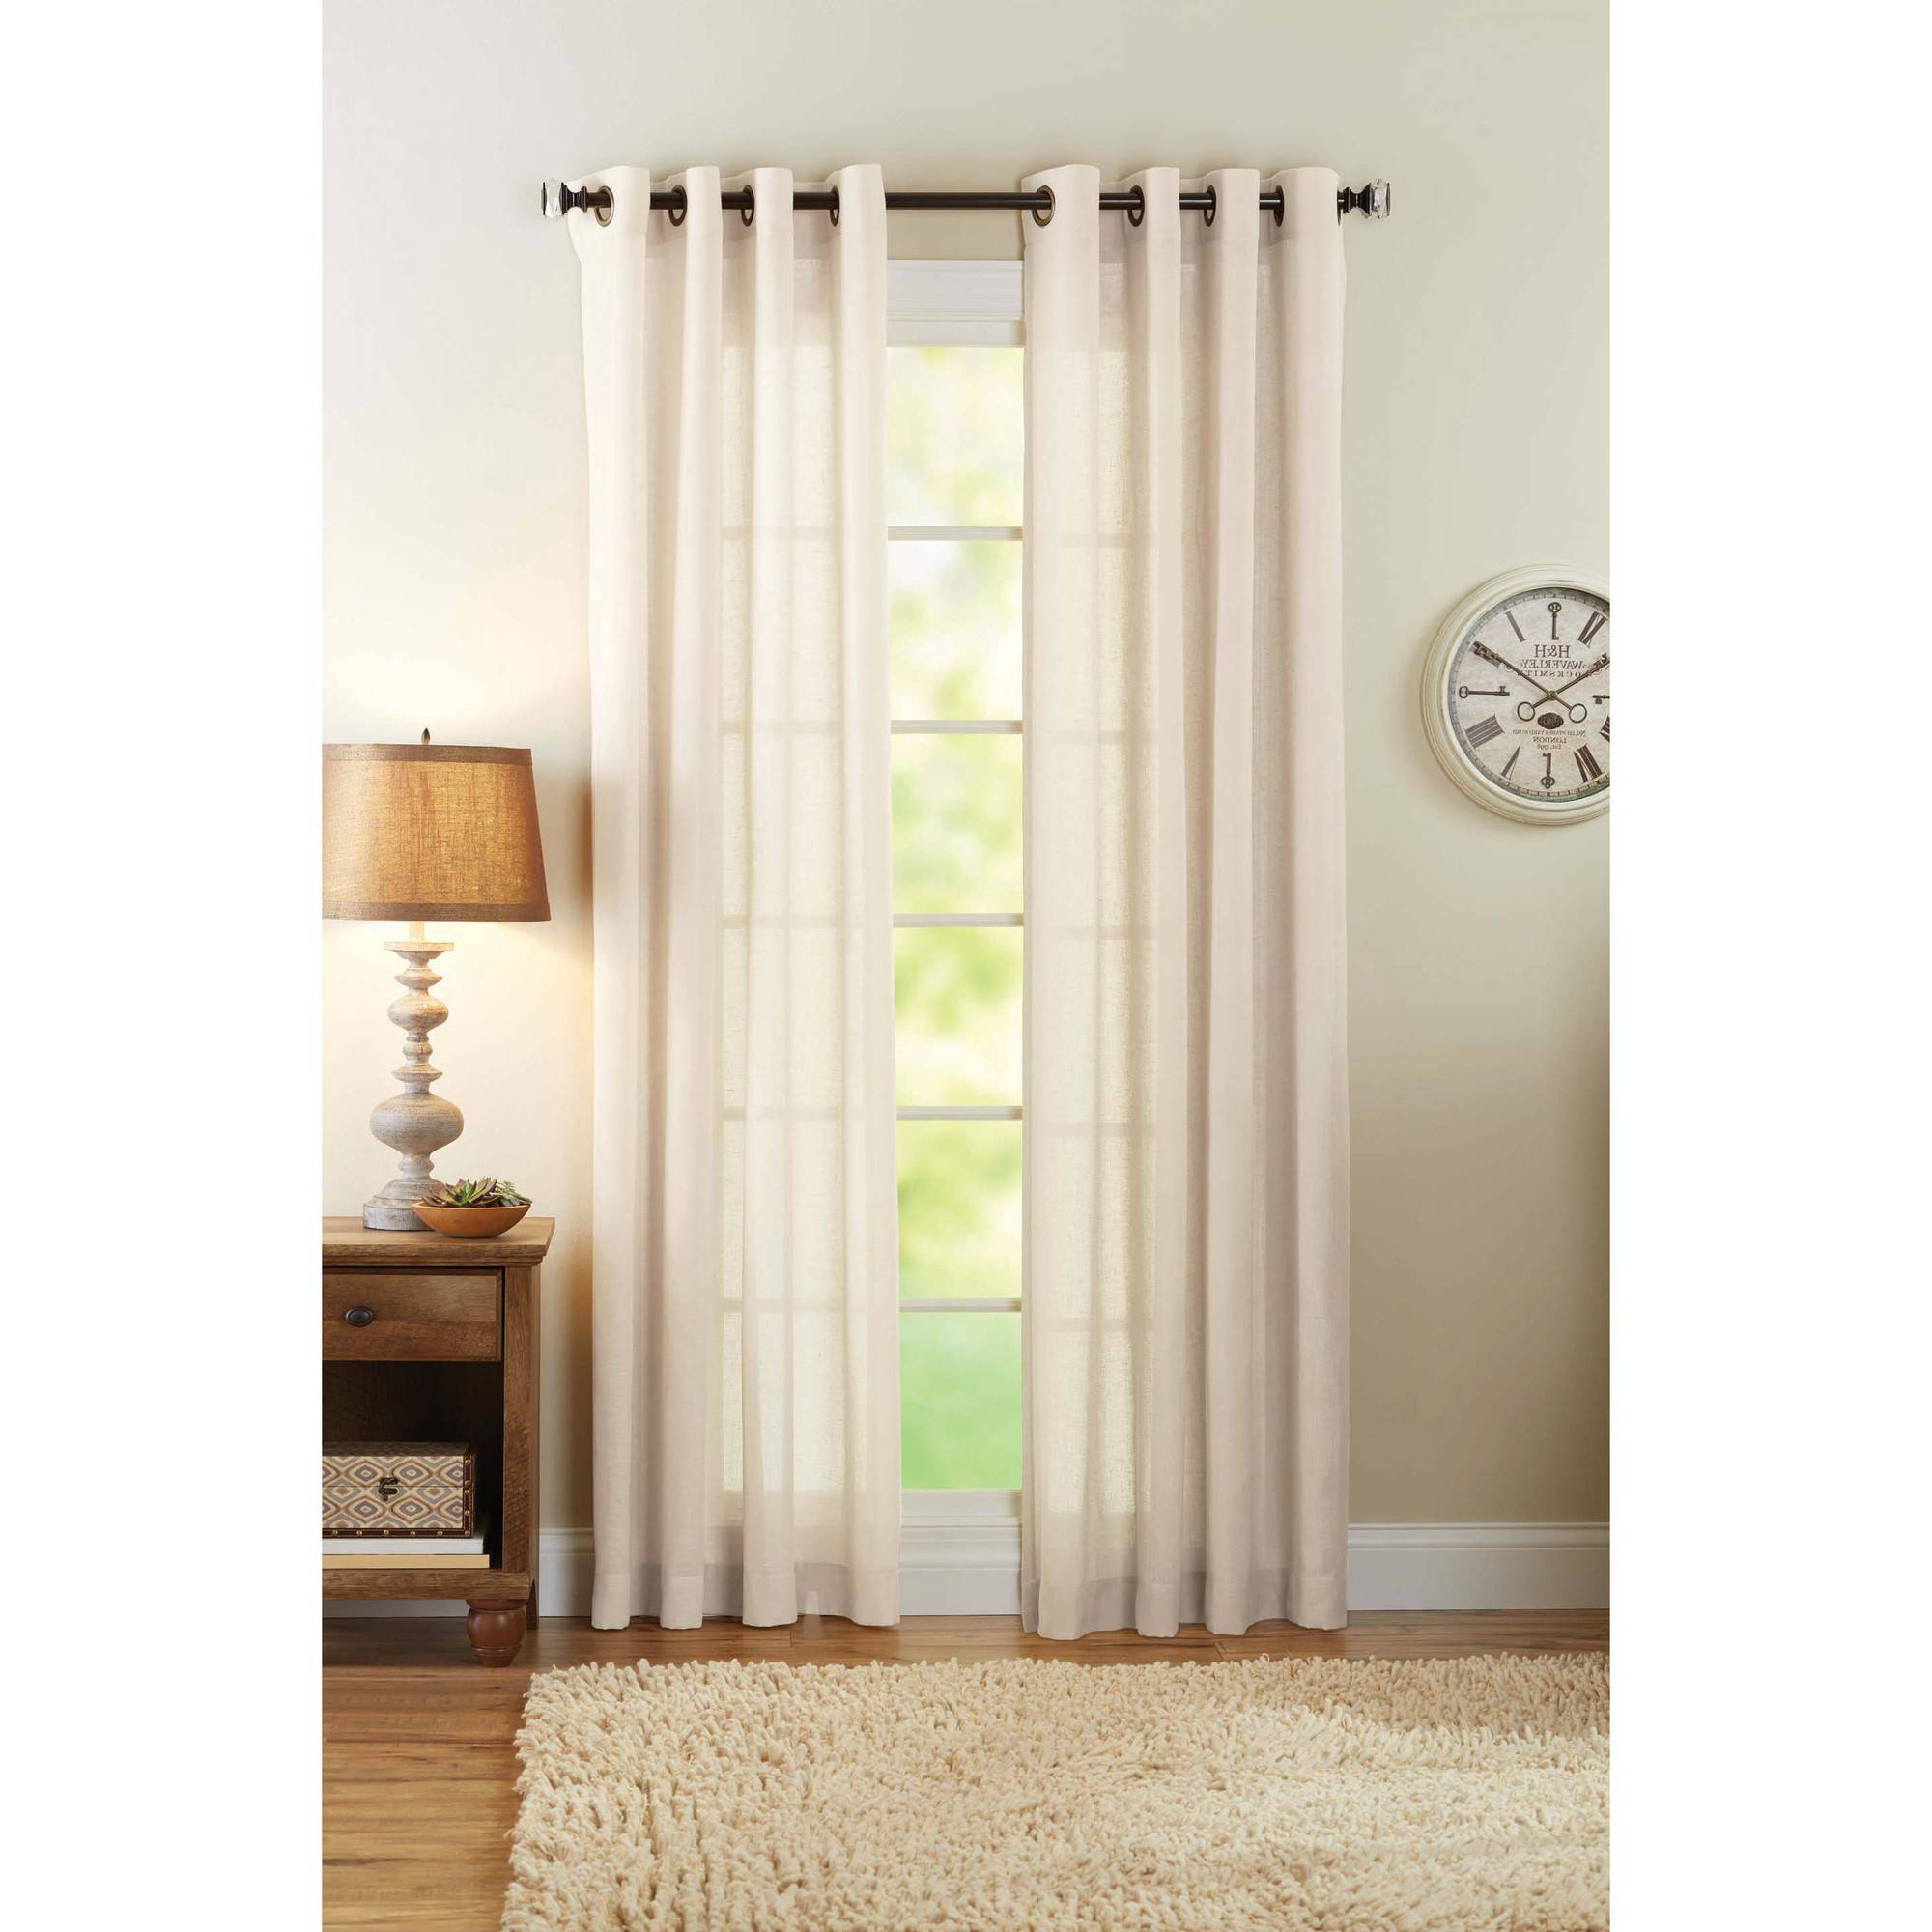 Recent Davis Patio Grommet Top Single Curtain Panels Intended For Better Homes & Gardens Semi Sheer Grommet Curtain Panel, Bleached Linen – Walmart (View 16 of 20)